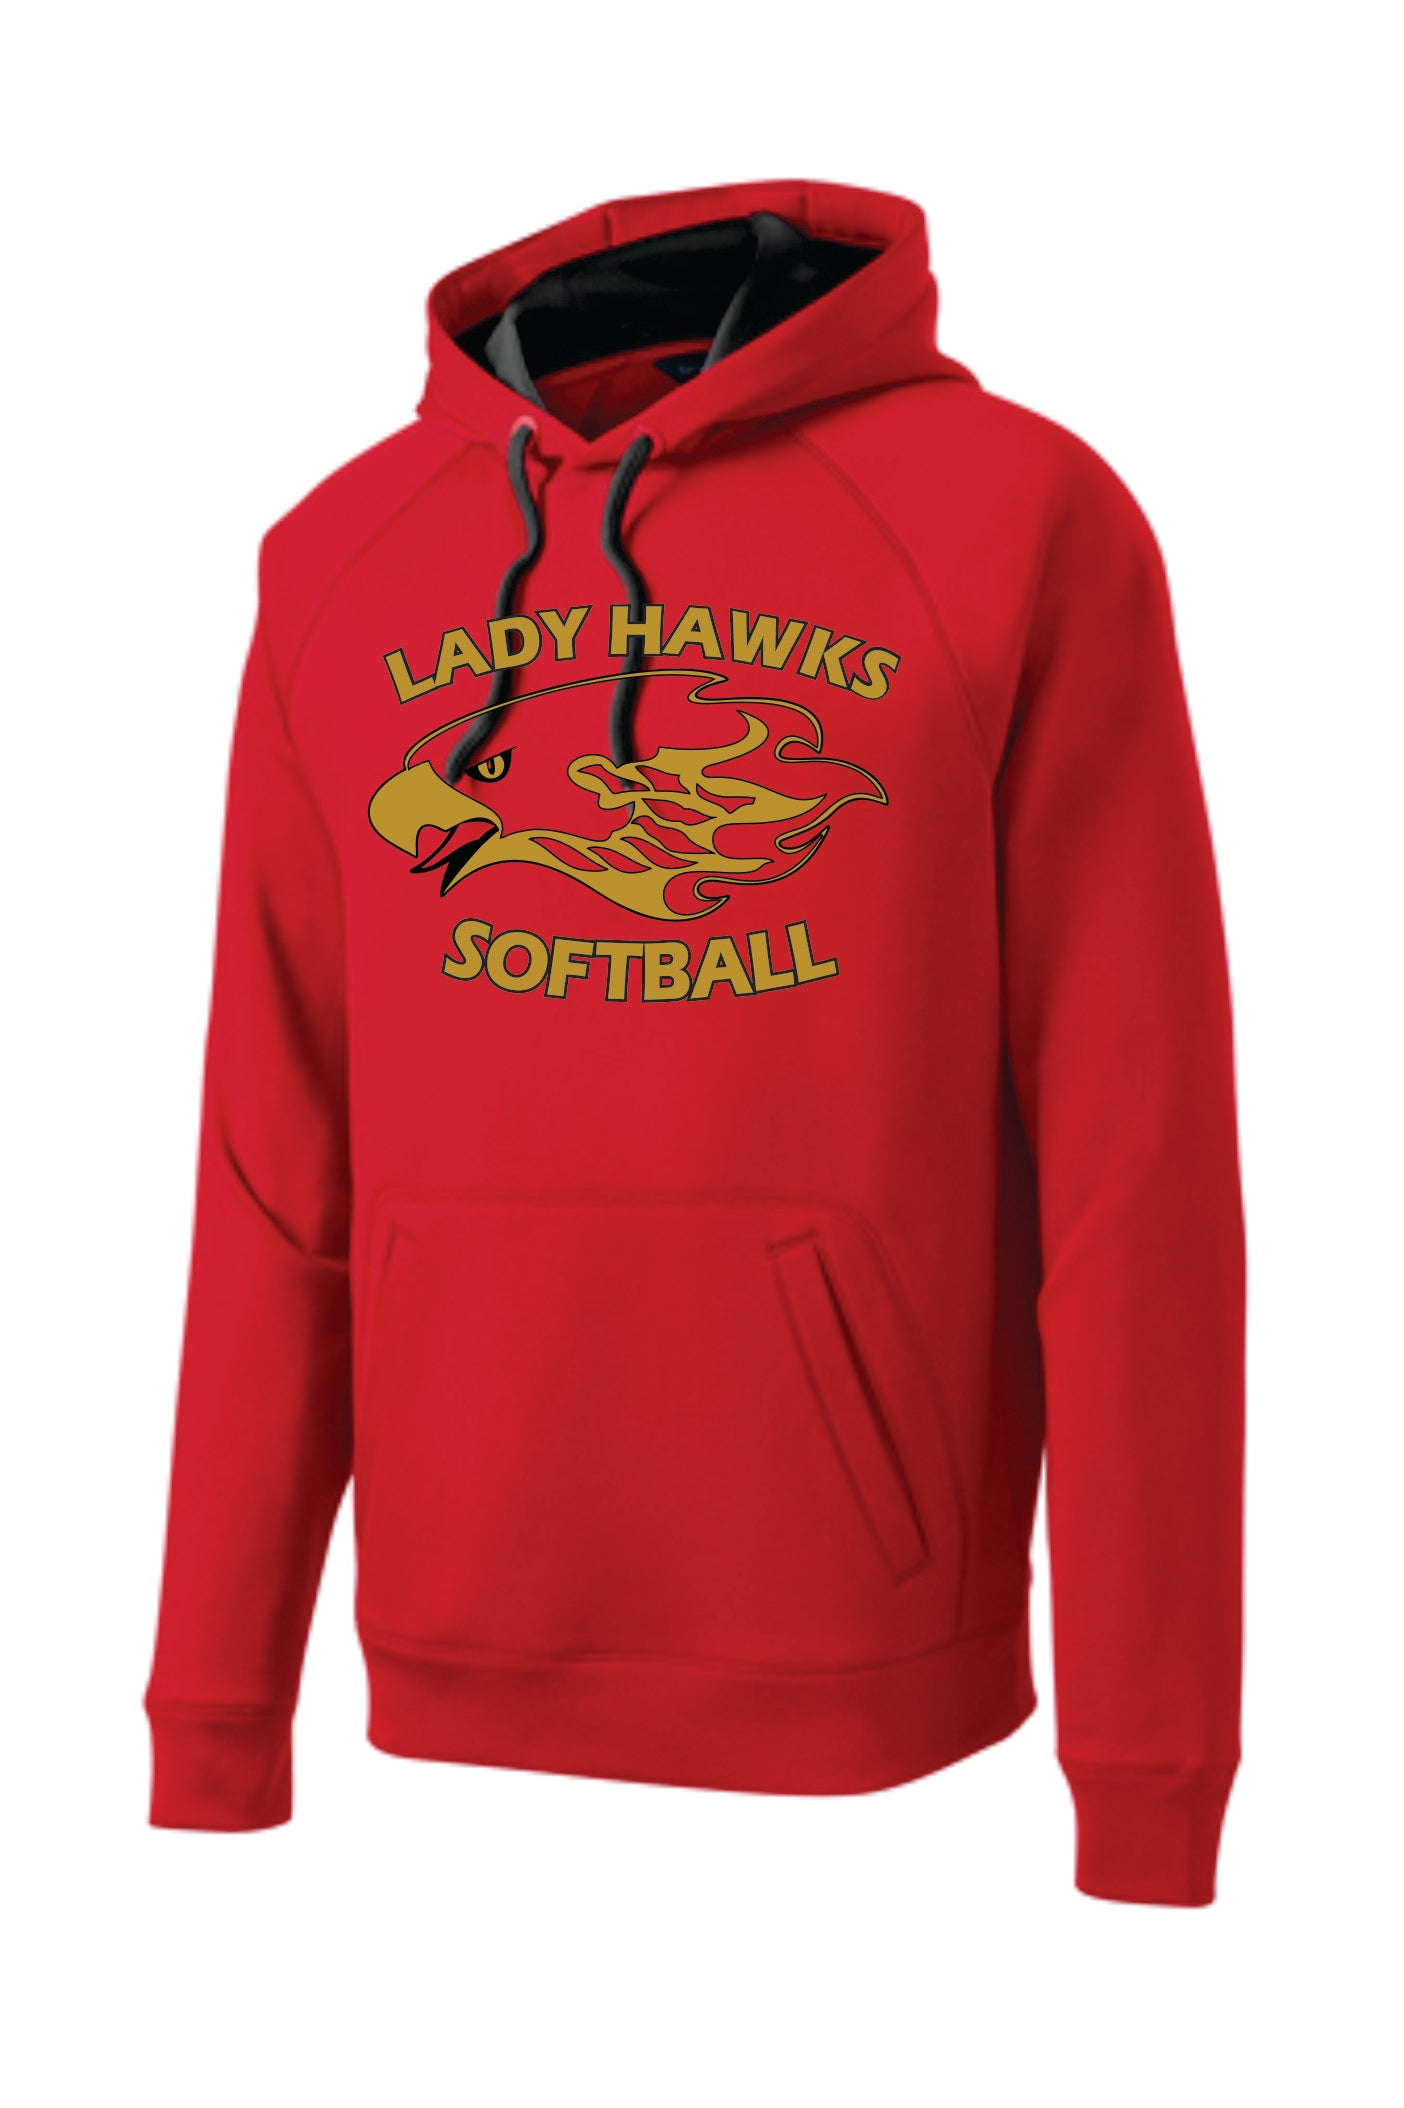 Rossview Hawks Softball Fleece Hoodie